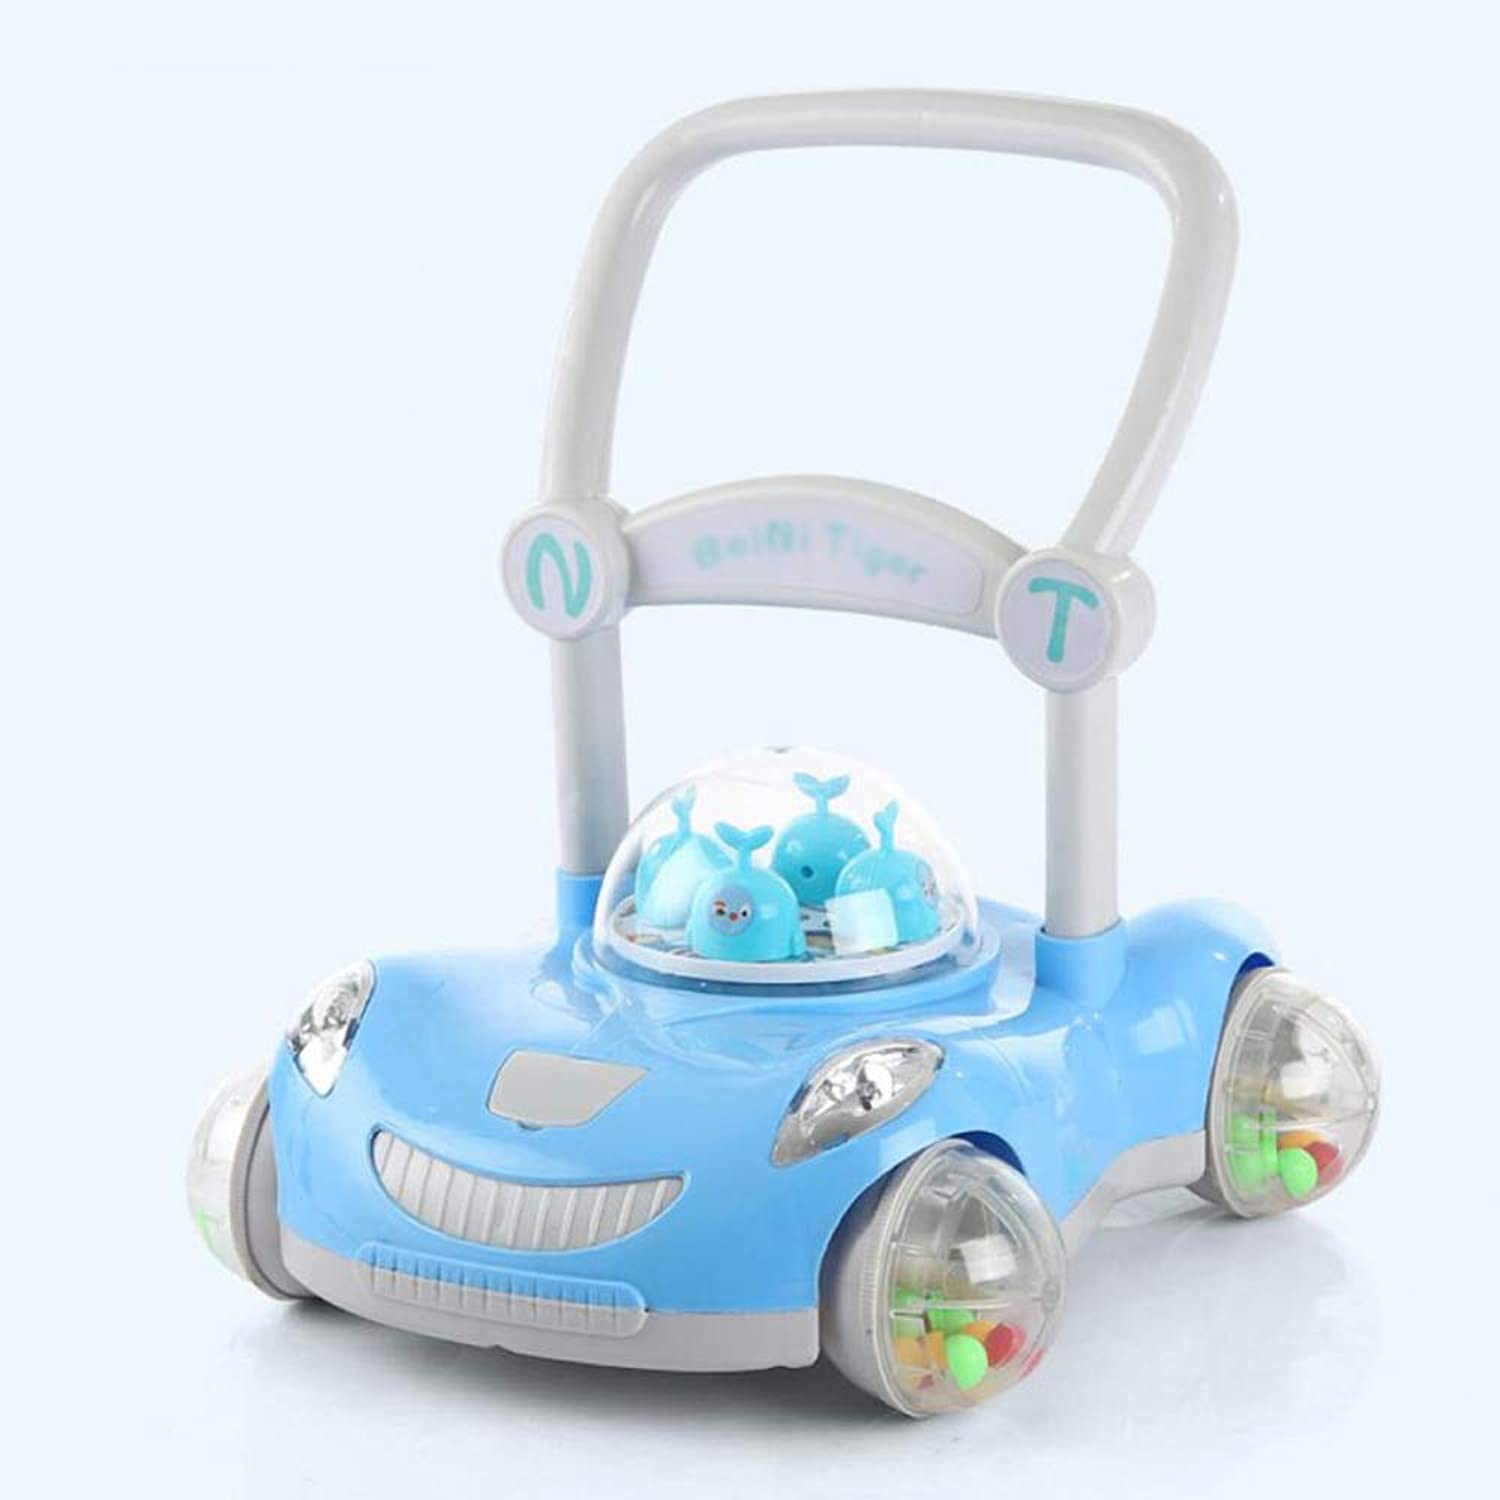 ZHAOHUIFANG Trolley, Walker Baby Can Adjust The Height And Low With Music With Flash 718 Month Trolley,bluee